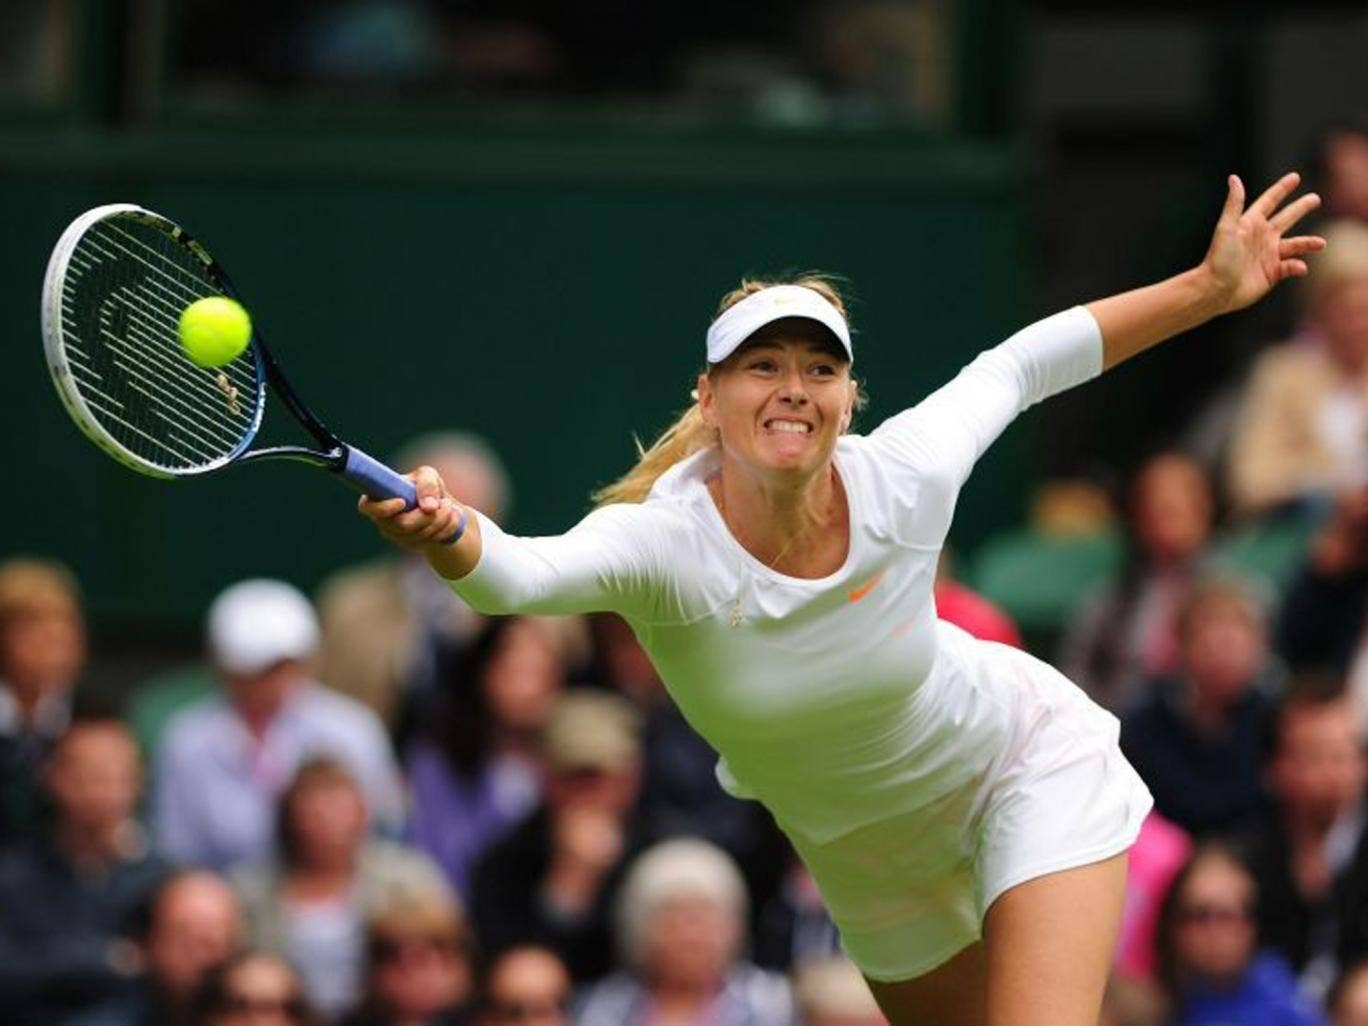 Kristina Mladenovic put Maria Sharapova under intense pressure in the opening set before the class of the world number three began to tell, resulting in a 7-6 (7/5) 6-3 victory for the Russian